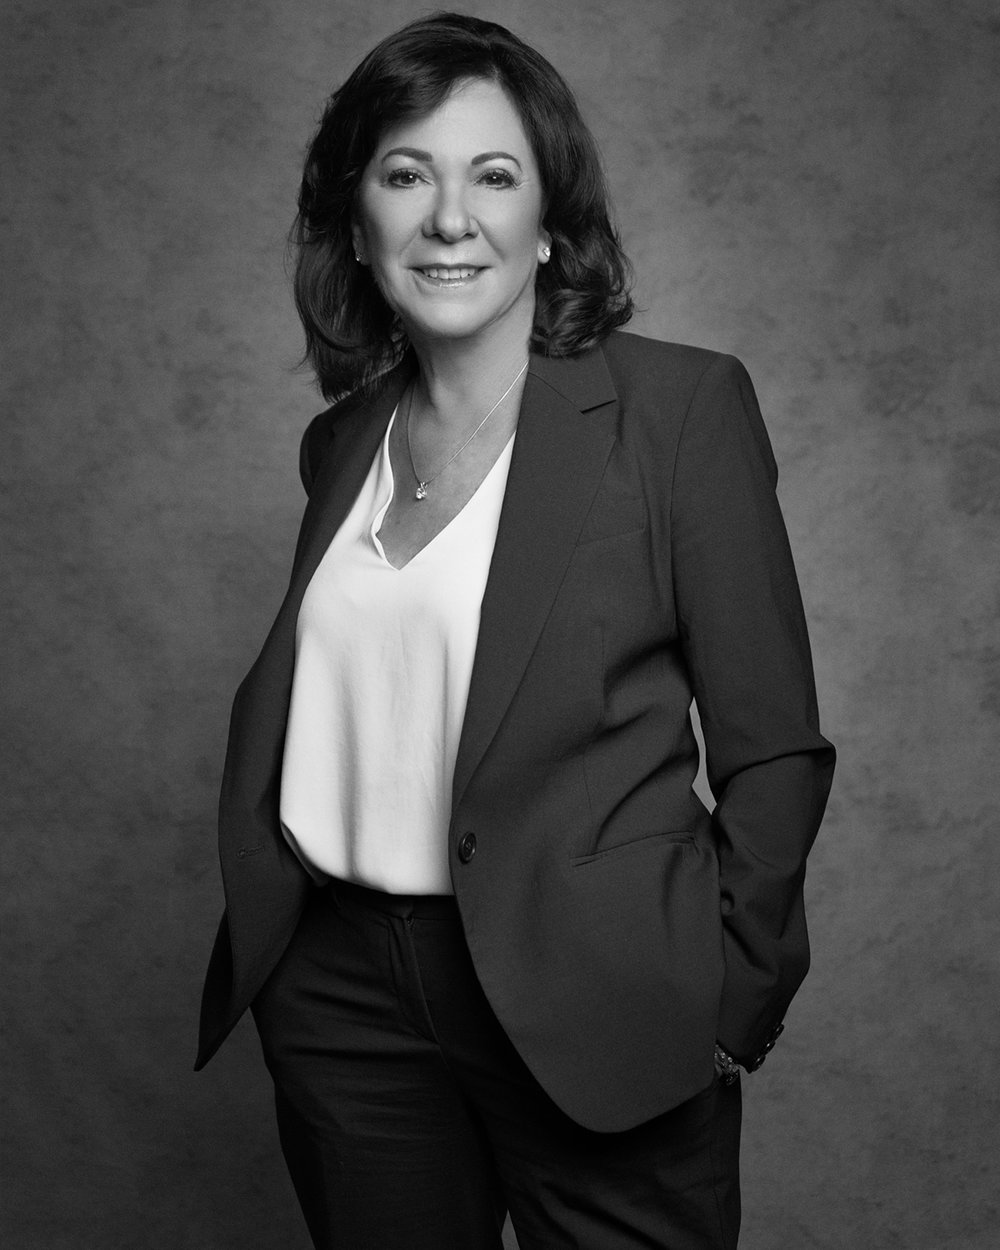 Sharon Olzerowicz. President & CEO of Hired by Matrix